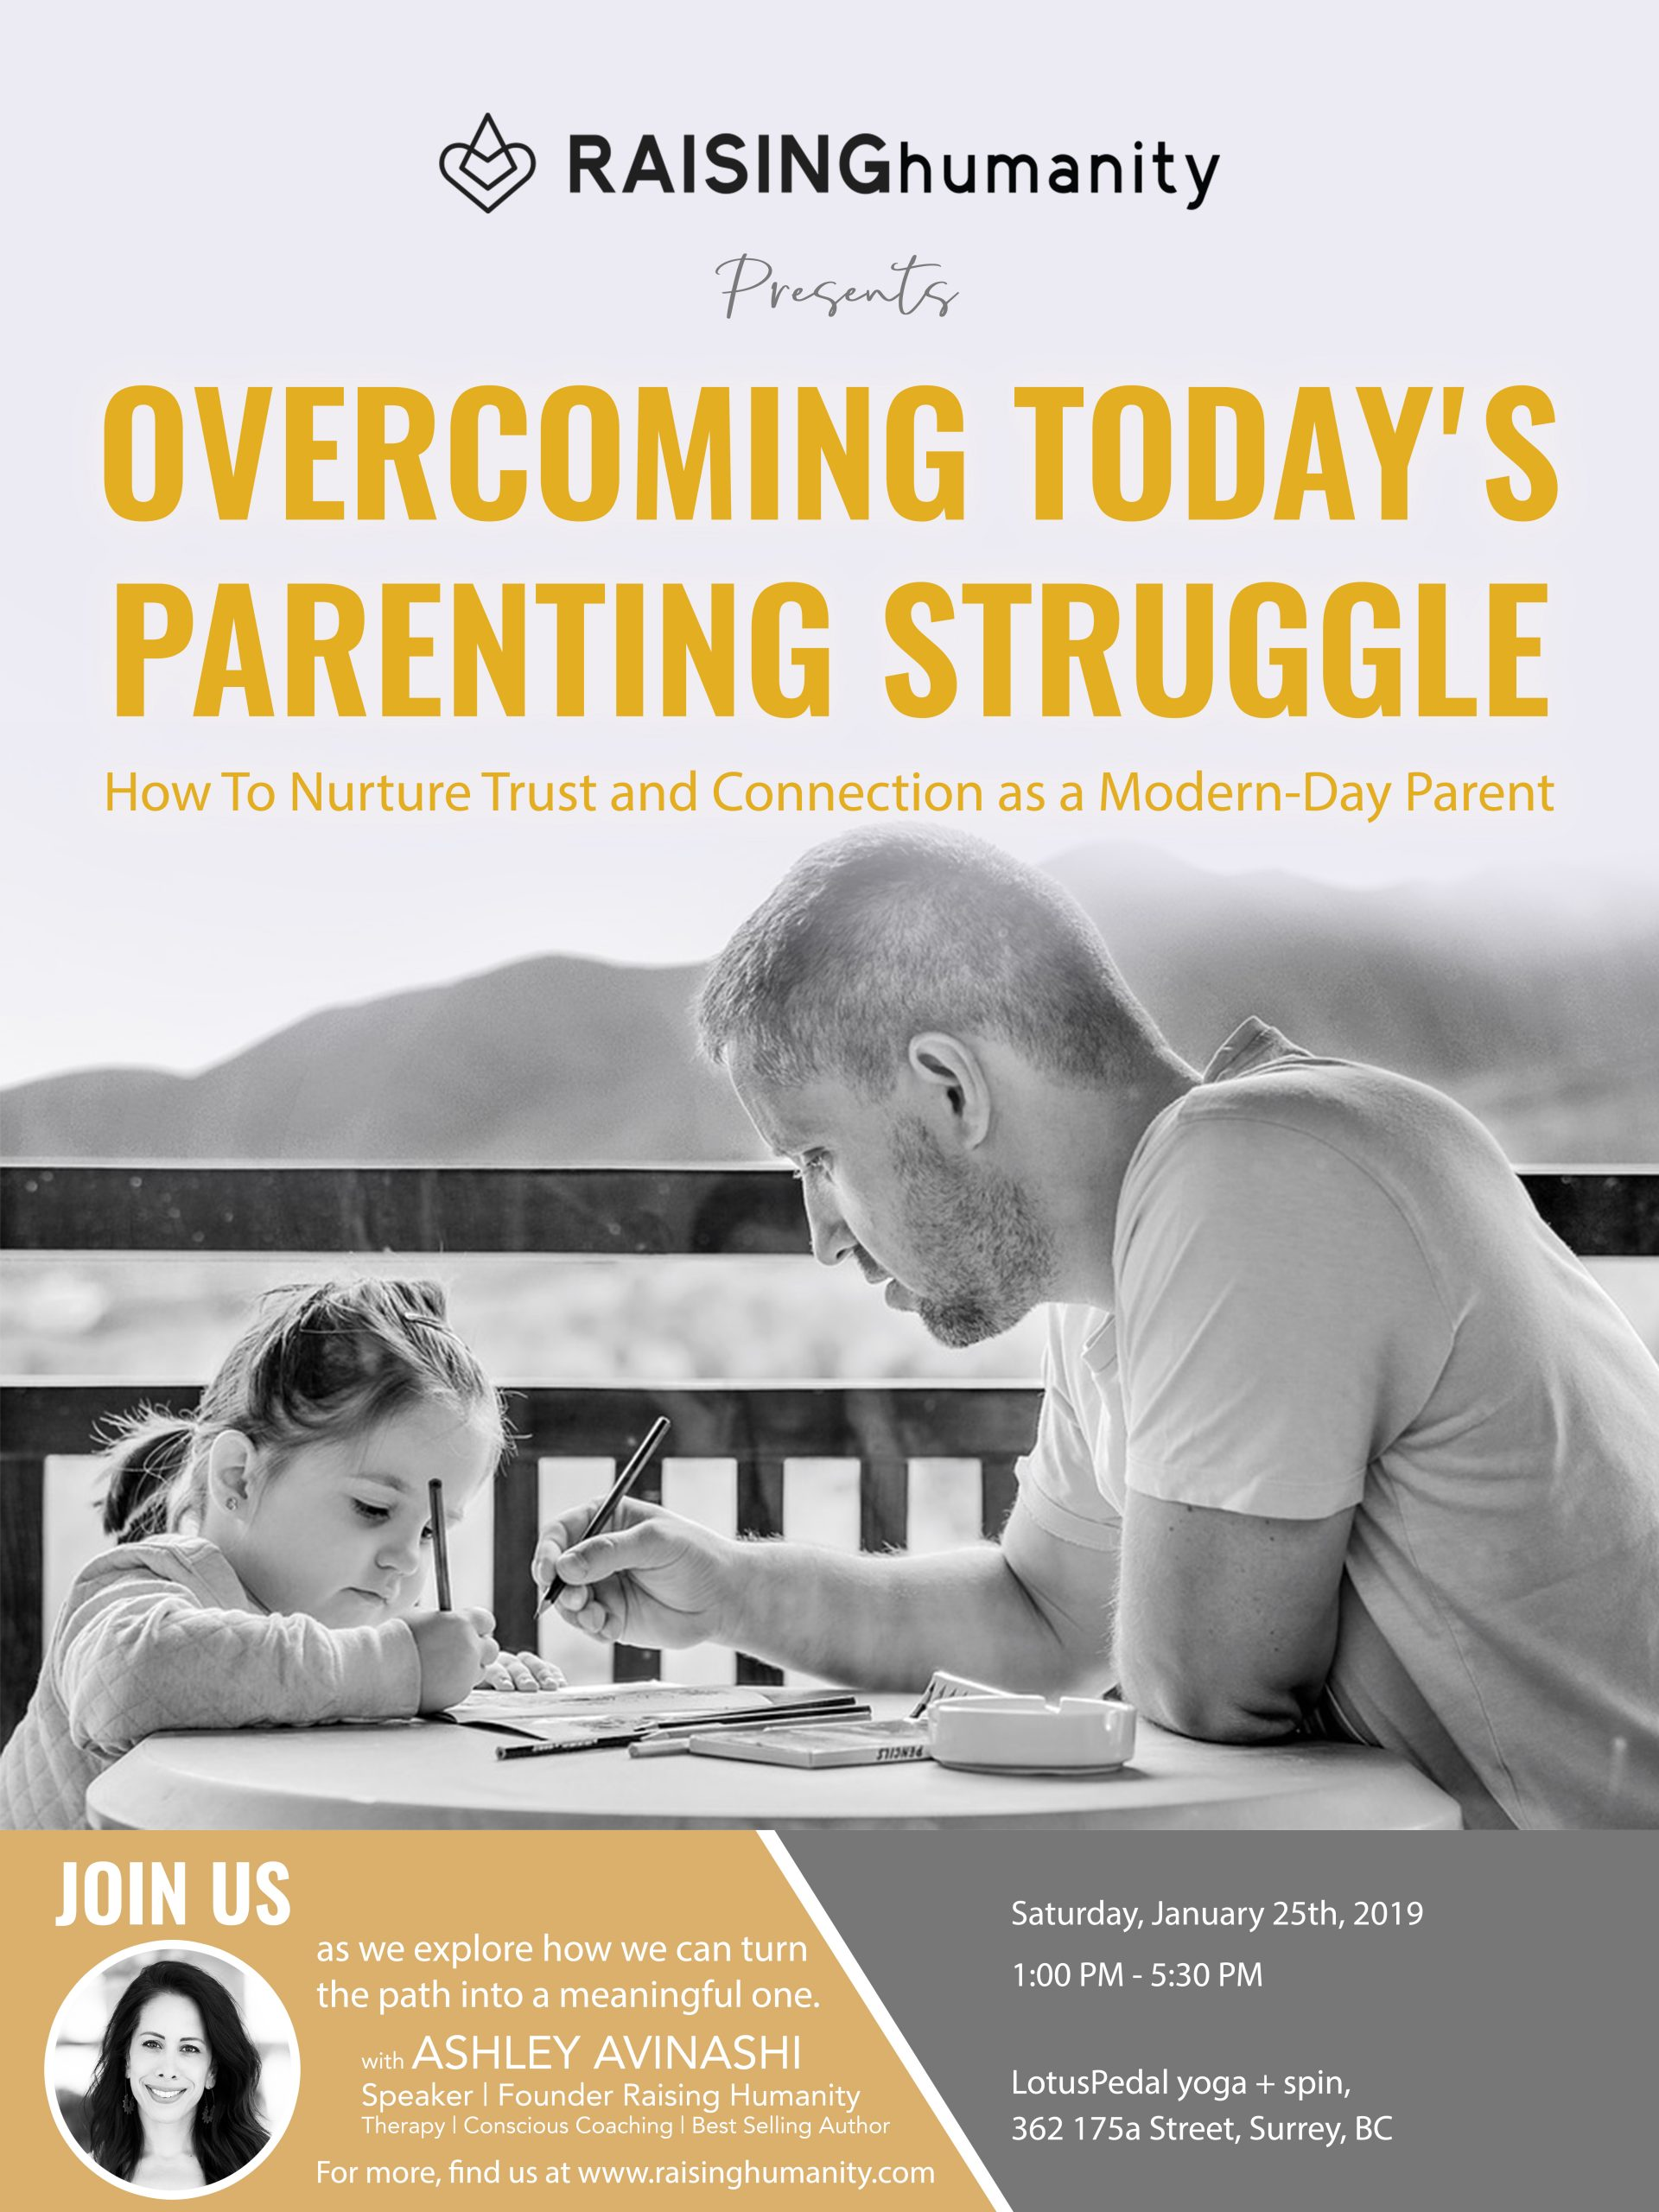 Overcoming Today's Parenting Struggle: How To Nurture Trust And Connection As A Modern Day Parent